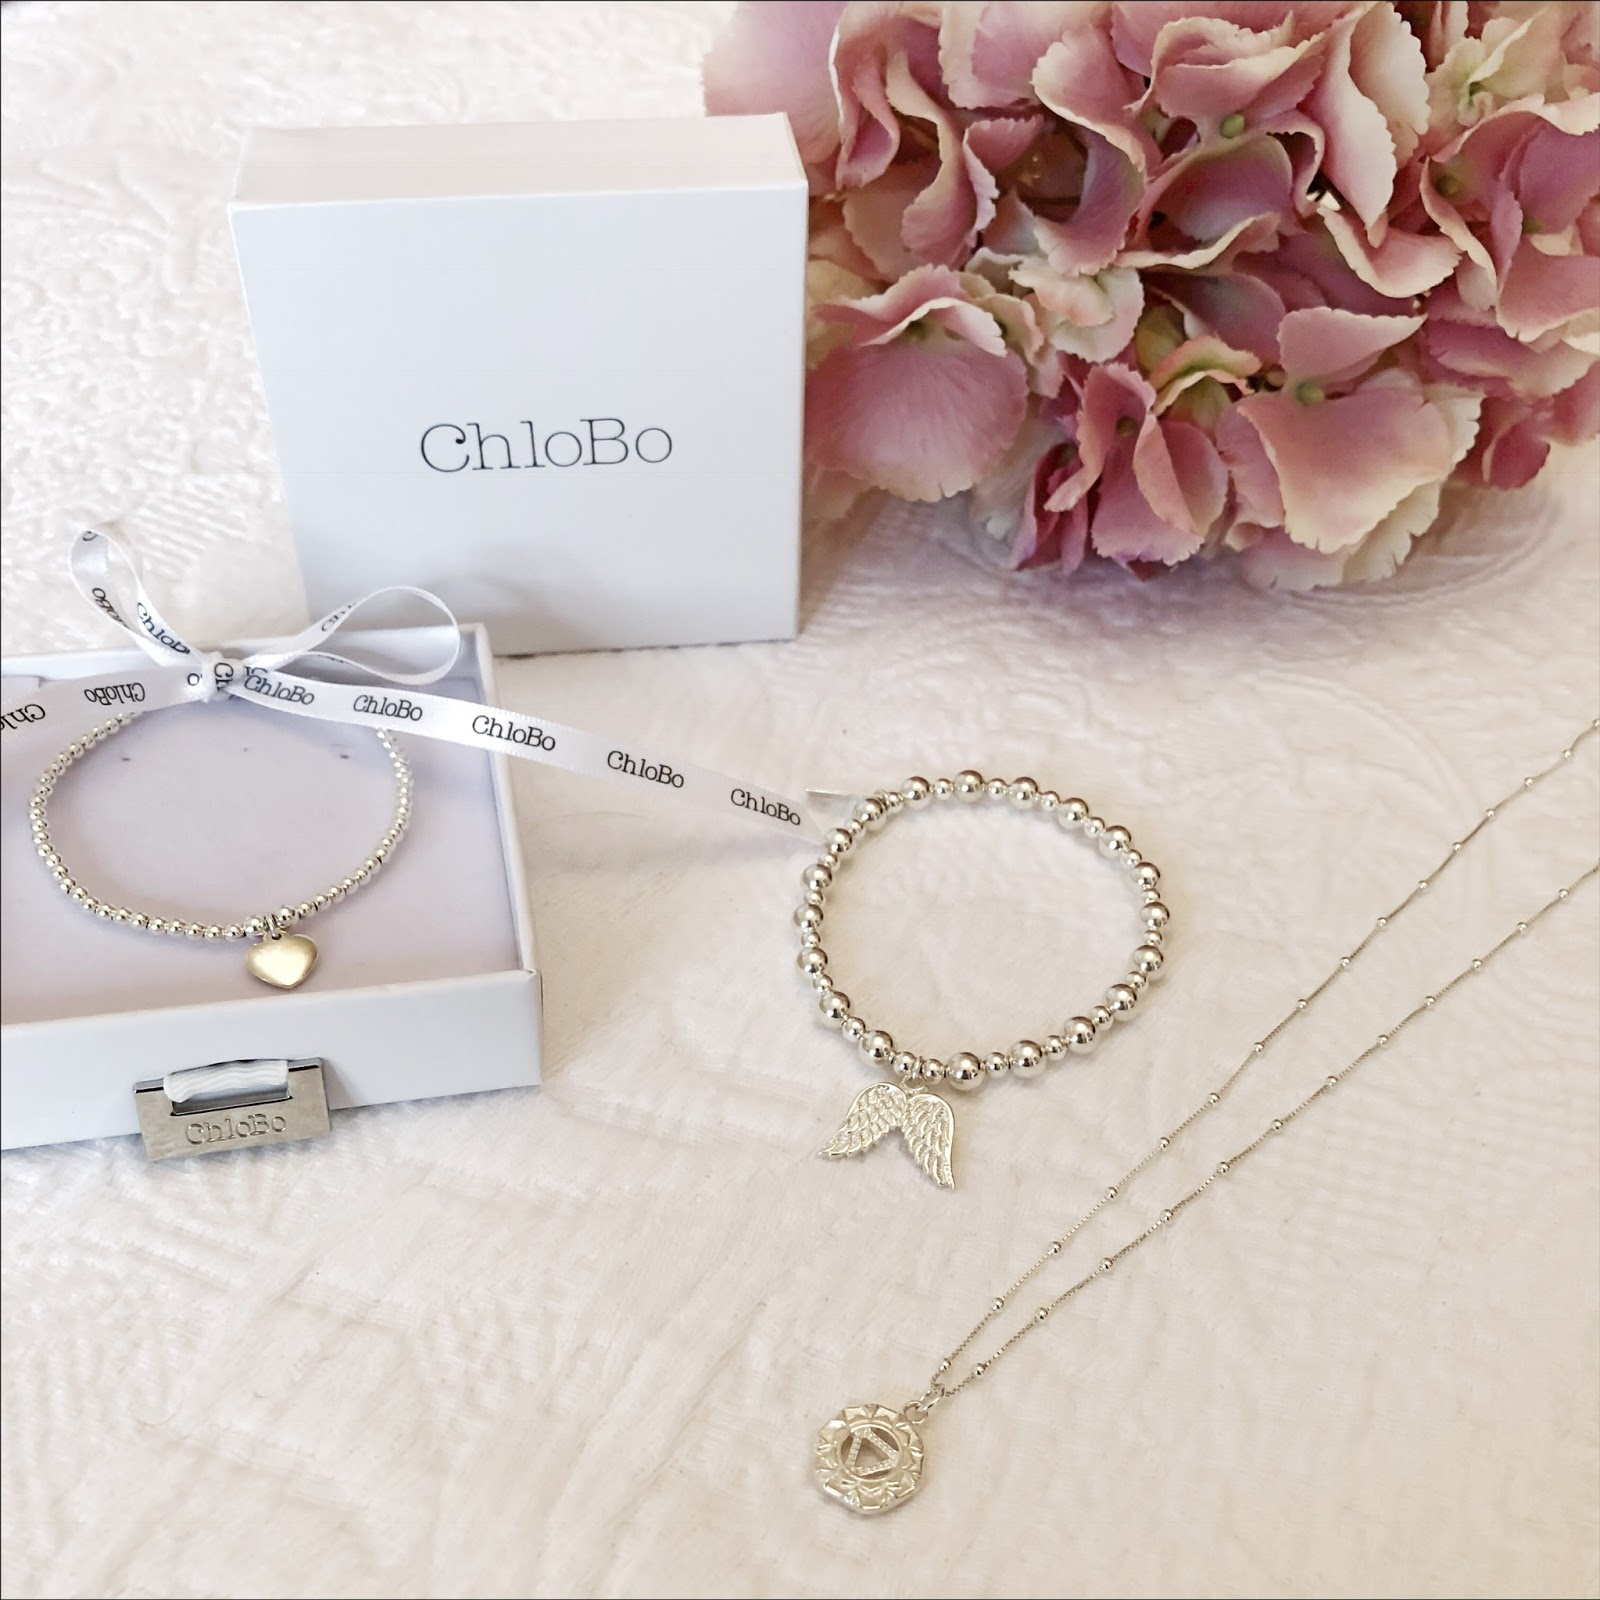 my midlife fashion chlobo solar plexus chakra necklace, chlobo mini small ball double angel wing bracelet, chlobo cute charm puffed heart bracelet